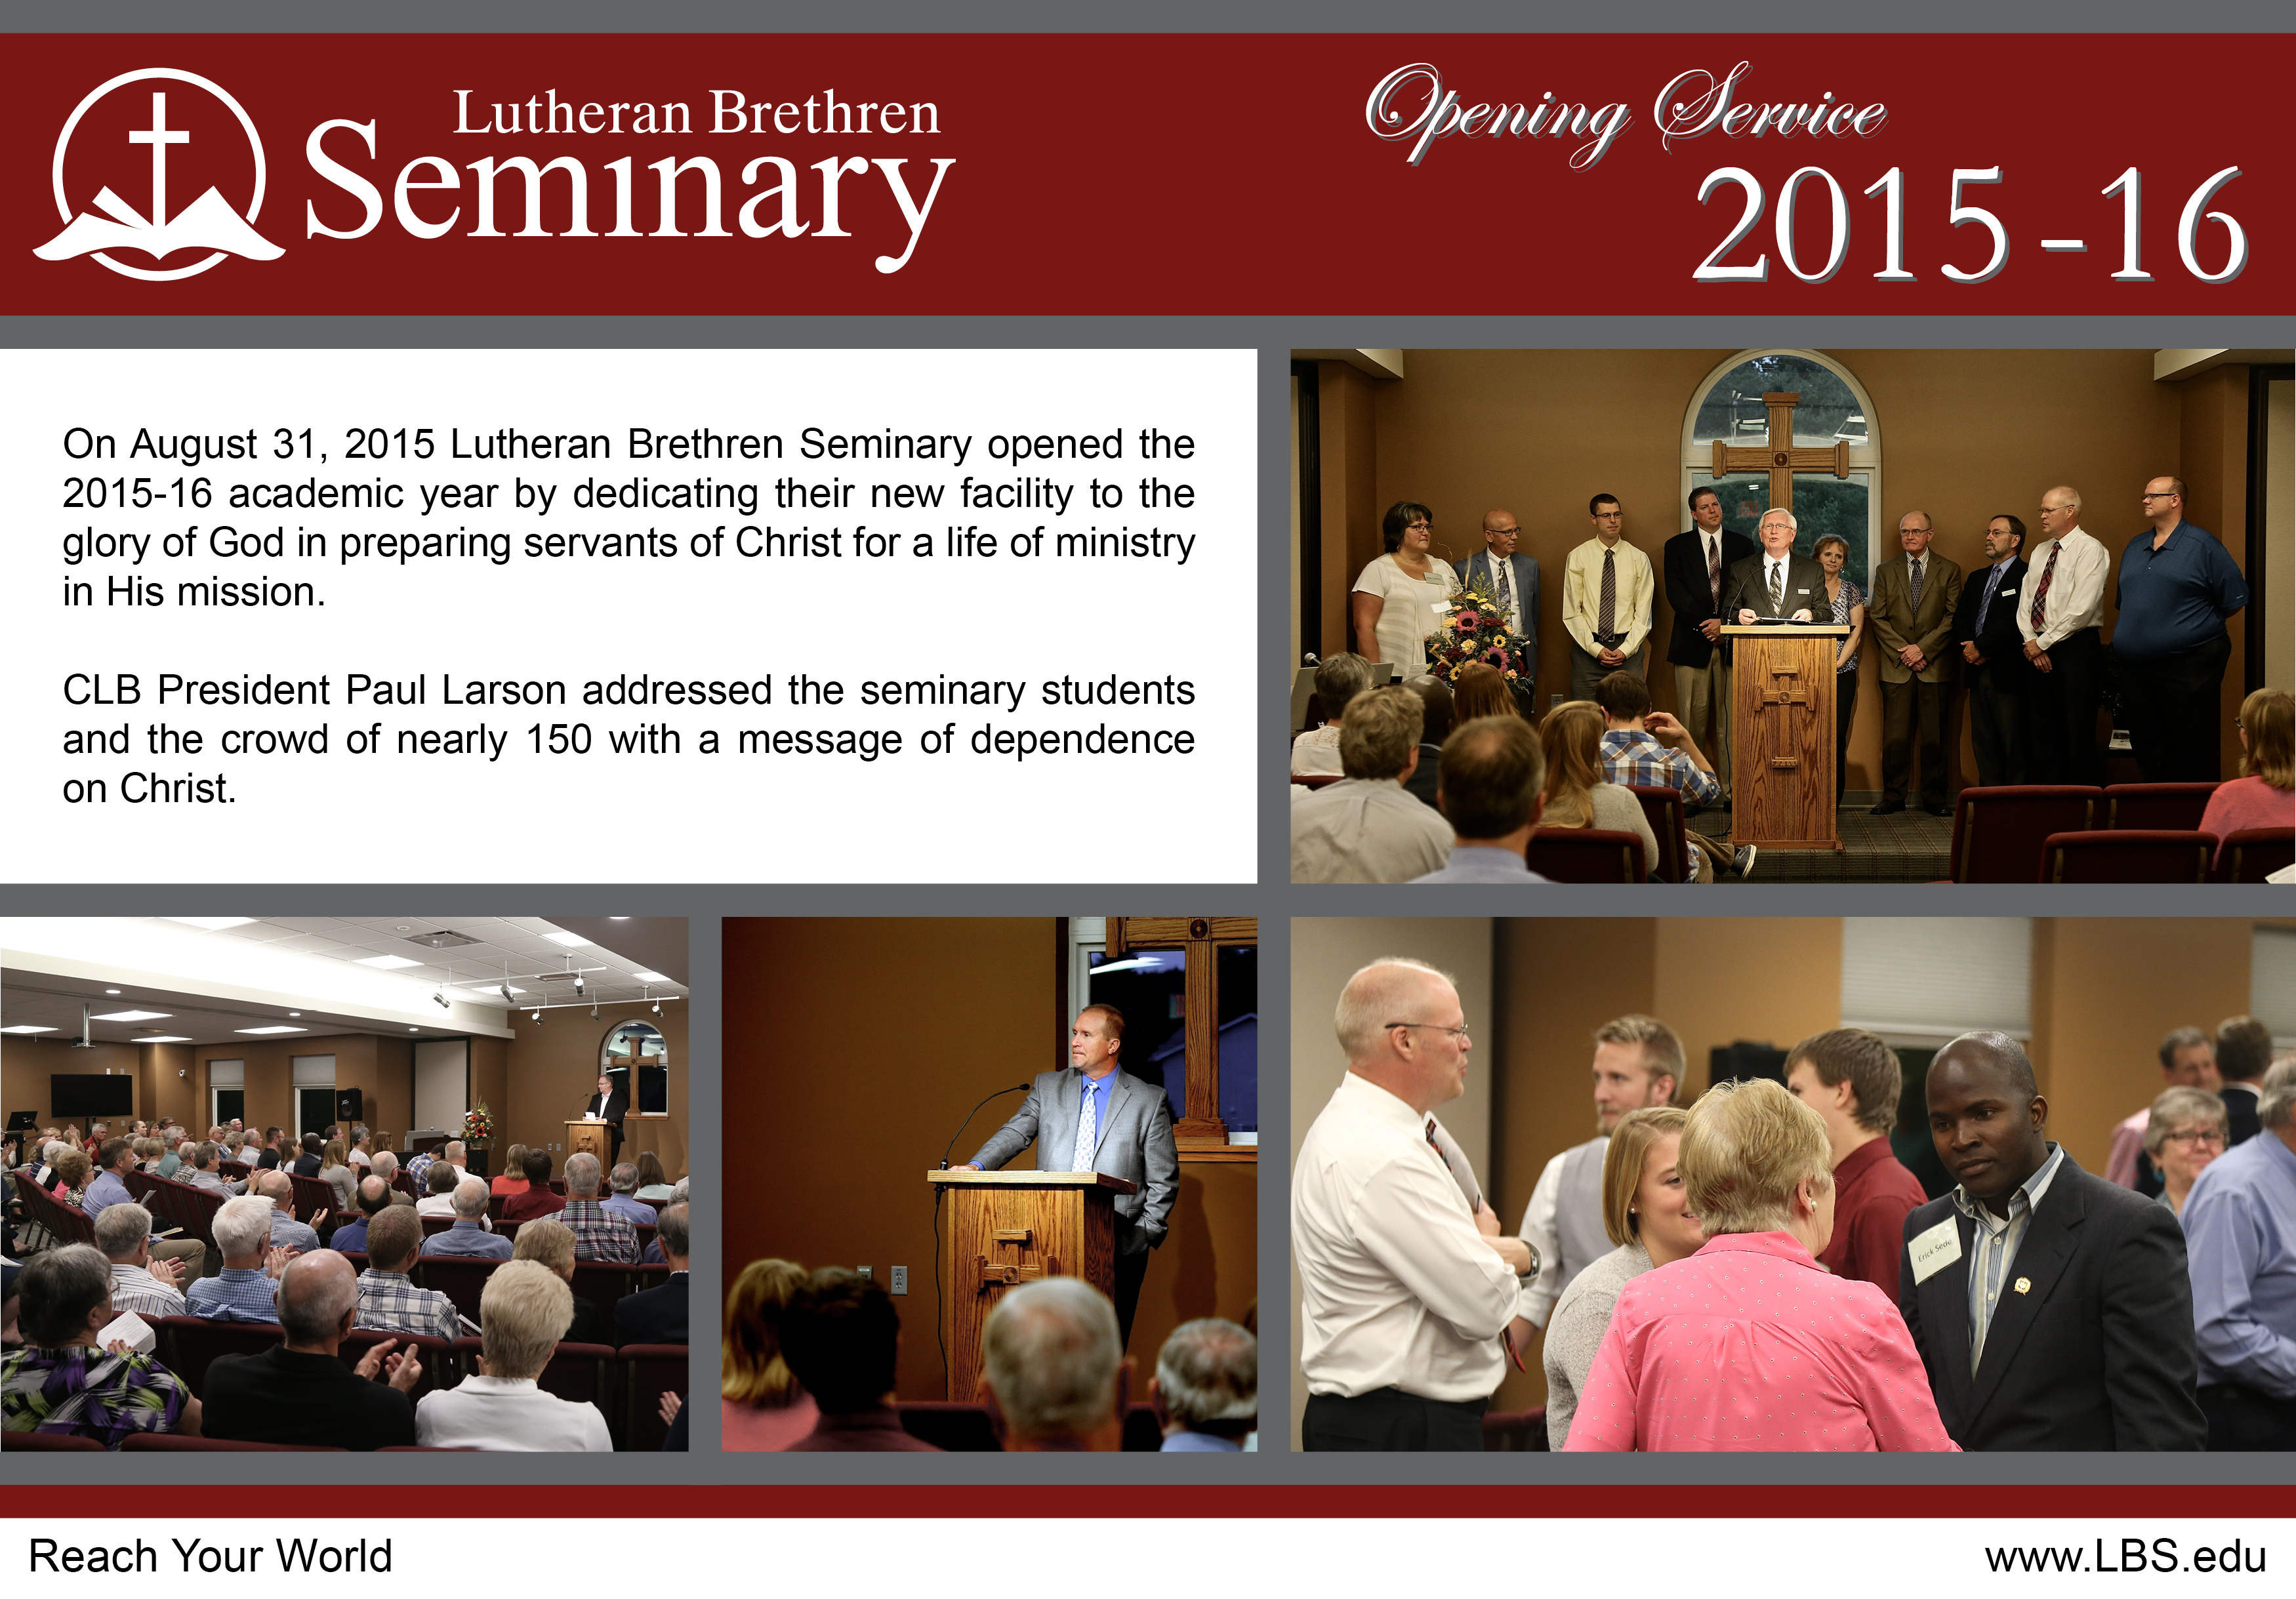 LBS Opening Service